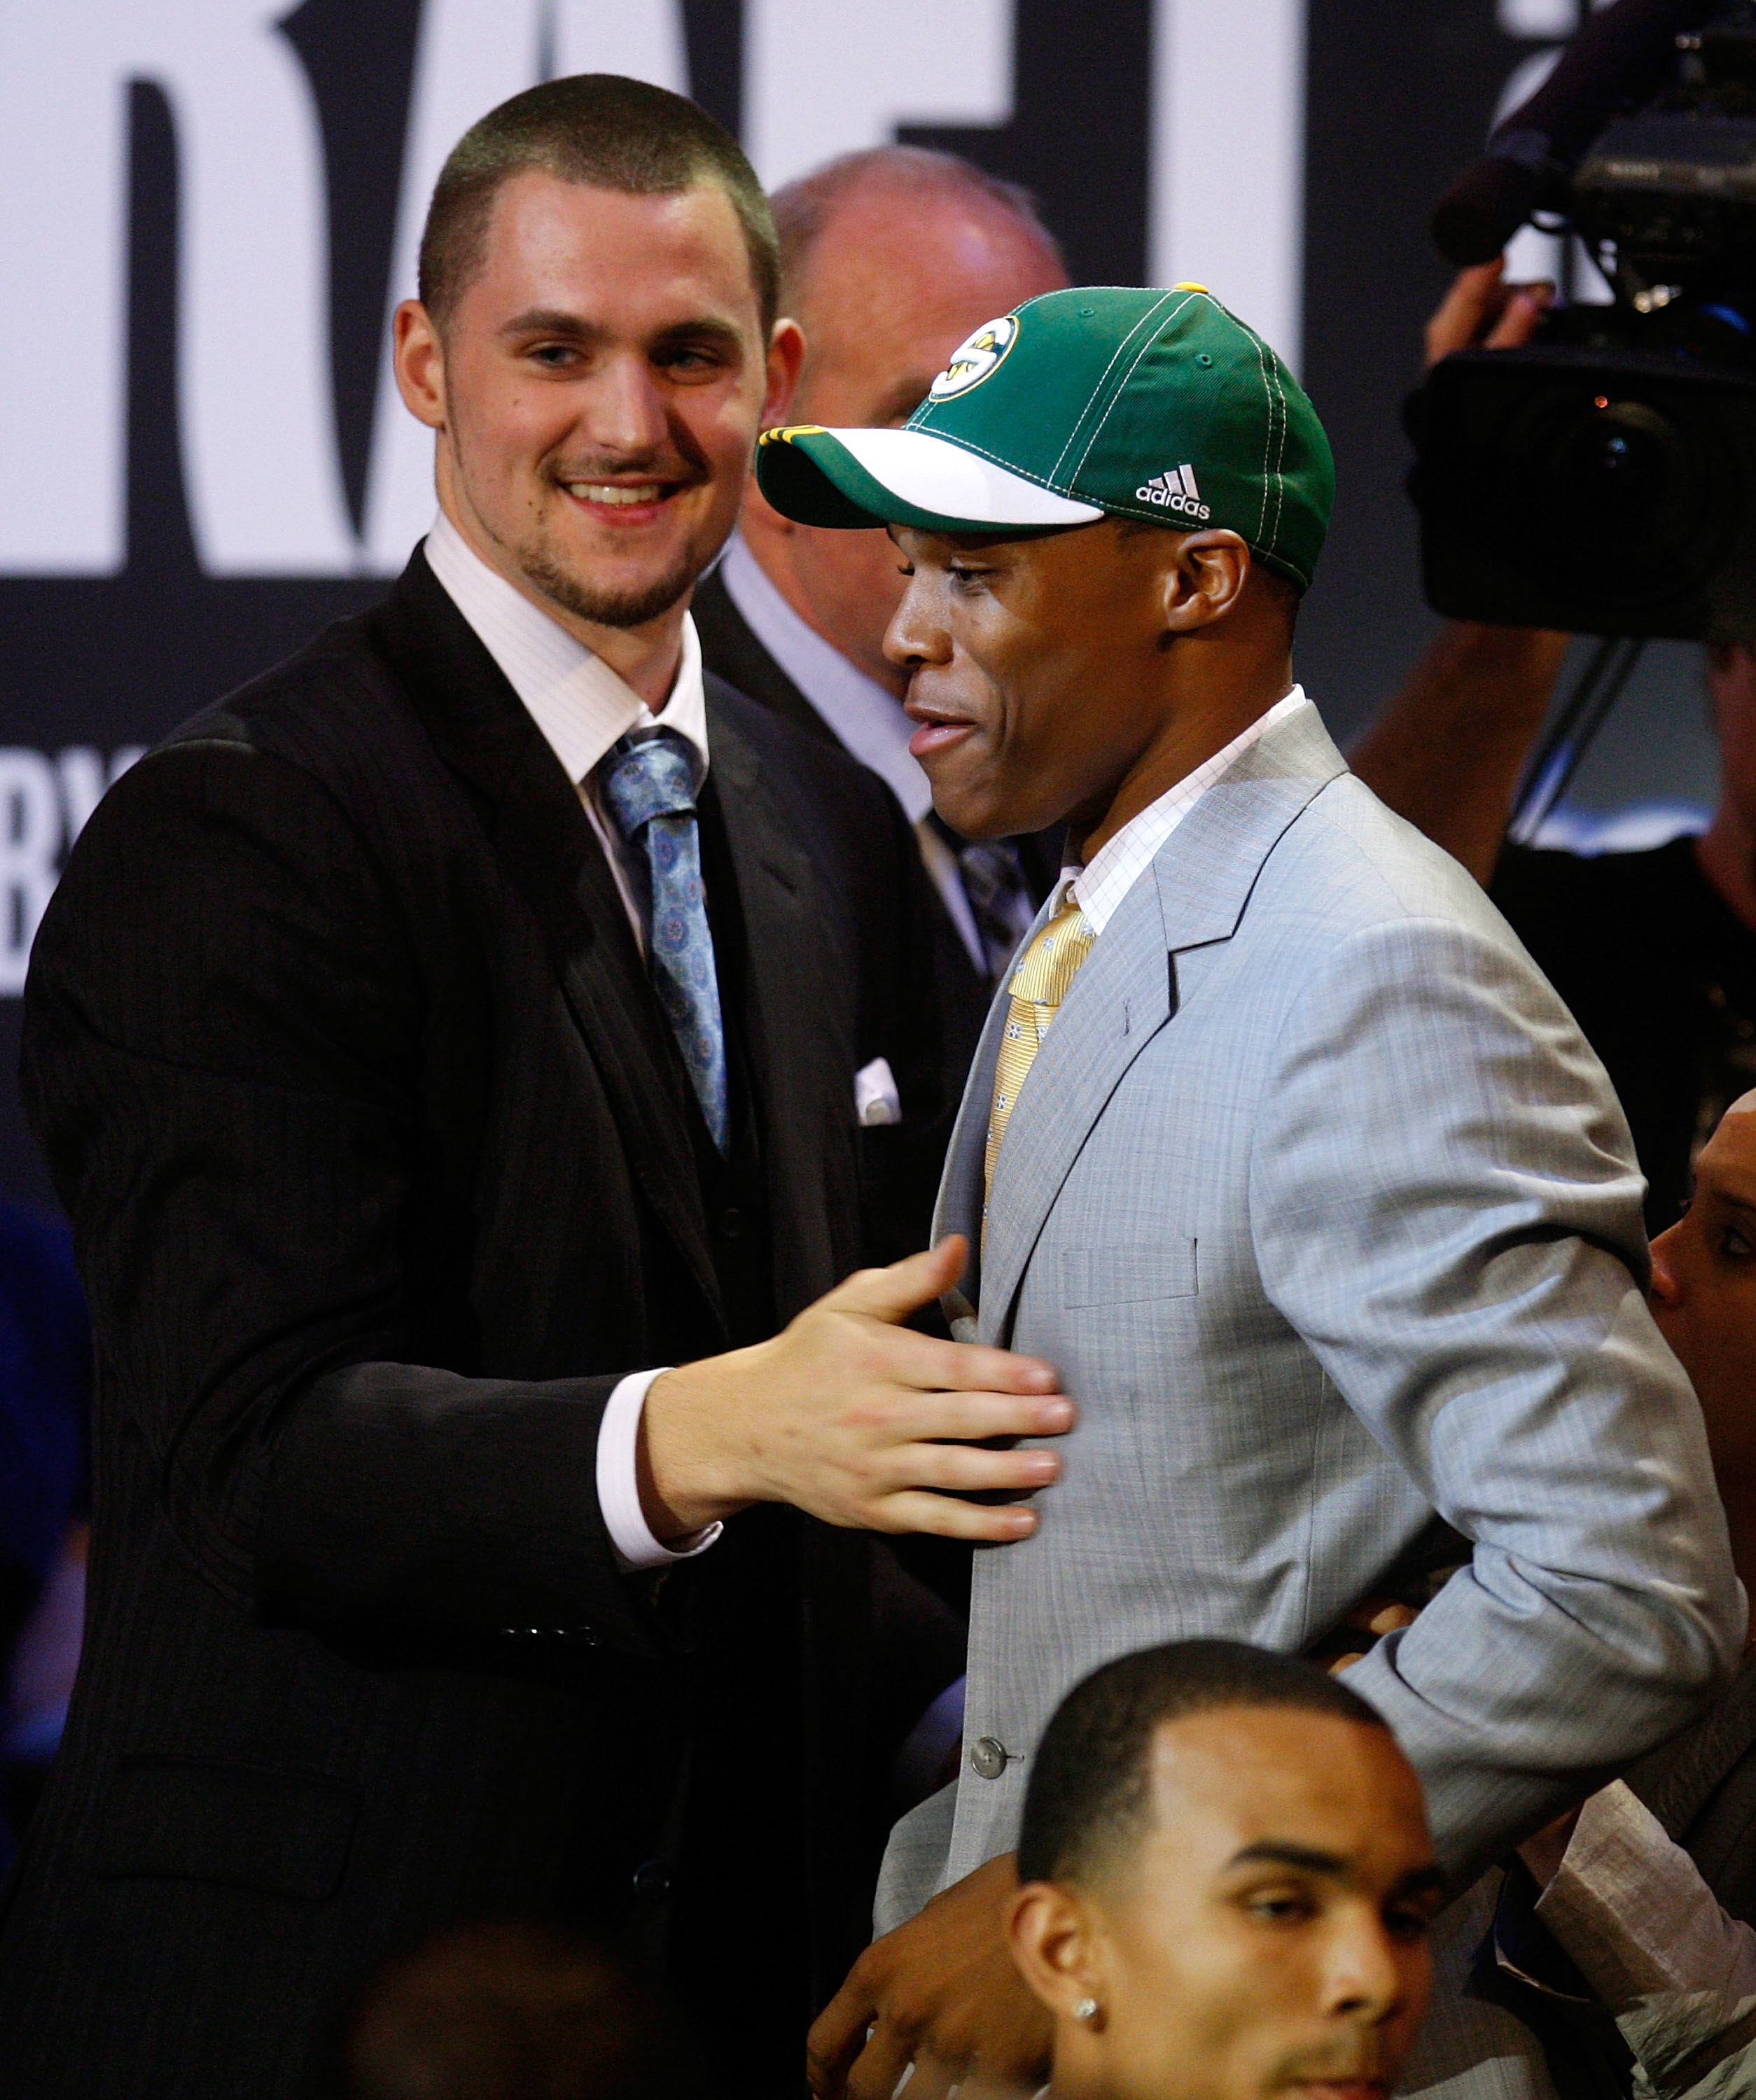 NEW YORK - JUNE 26:  (R-L) Number four draft pick for the Seattle SuperSonics, Russell Westbrook is congratulated by the fifth pick for the Memphis Grizzlies, Kevin Love during the 2008 NBA Draft at the Wamu Theatre at Madison Square Garden June 26, 2008